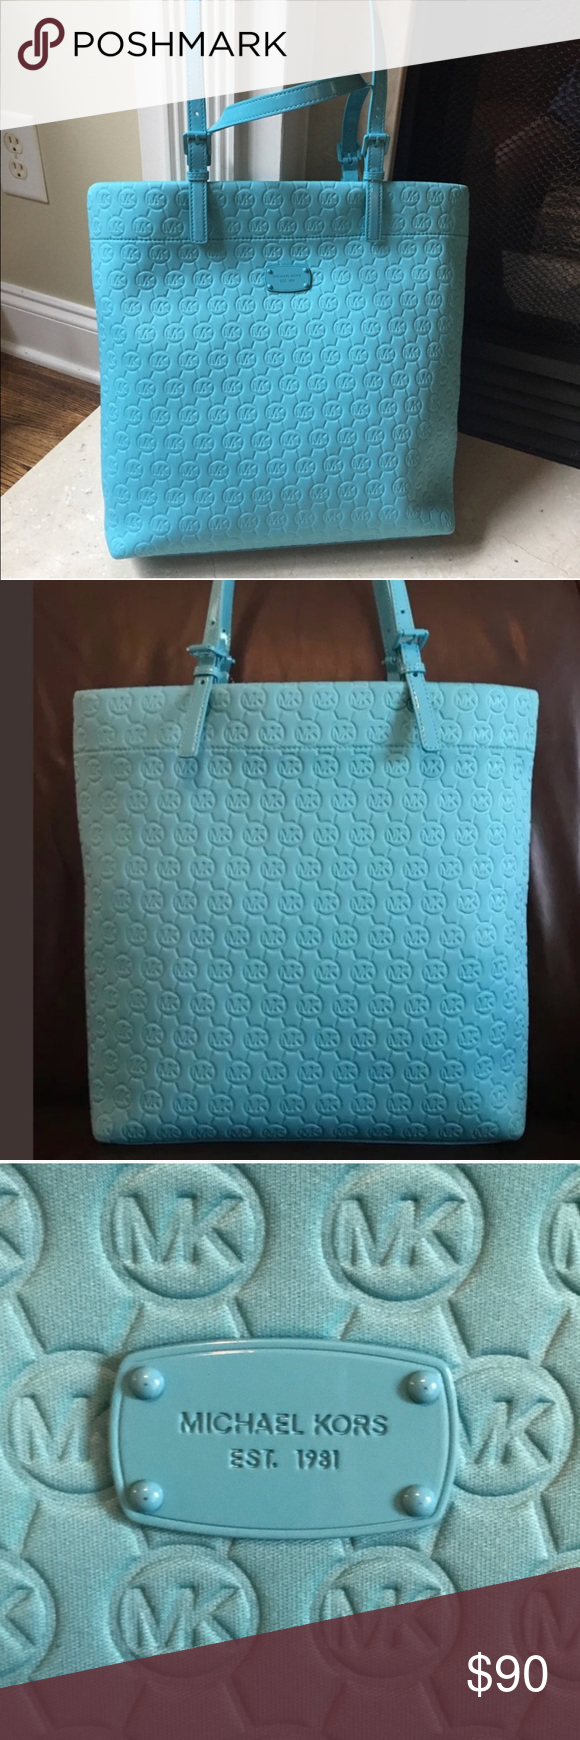 8d7199a59d6c Michael Kors Jet Set Neoprene Tote Turquoise NWT Brand new with tags.  Authentic. MSRP $158. Large Size. 15